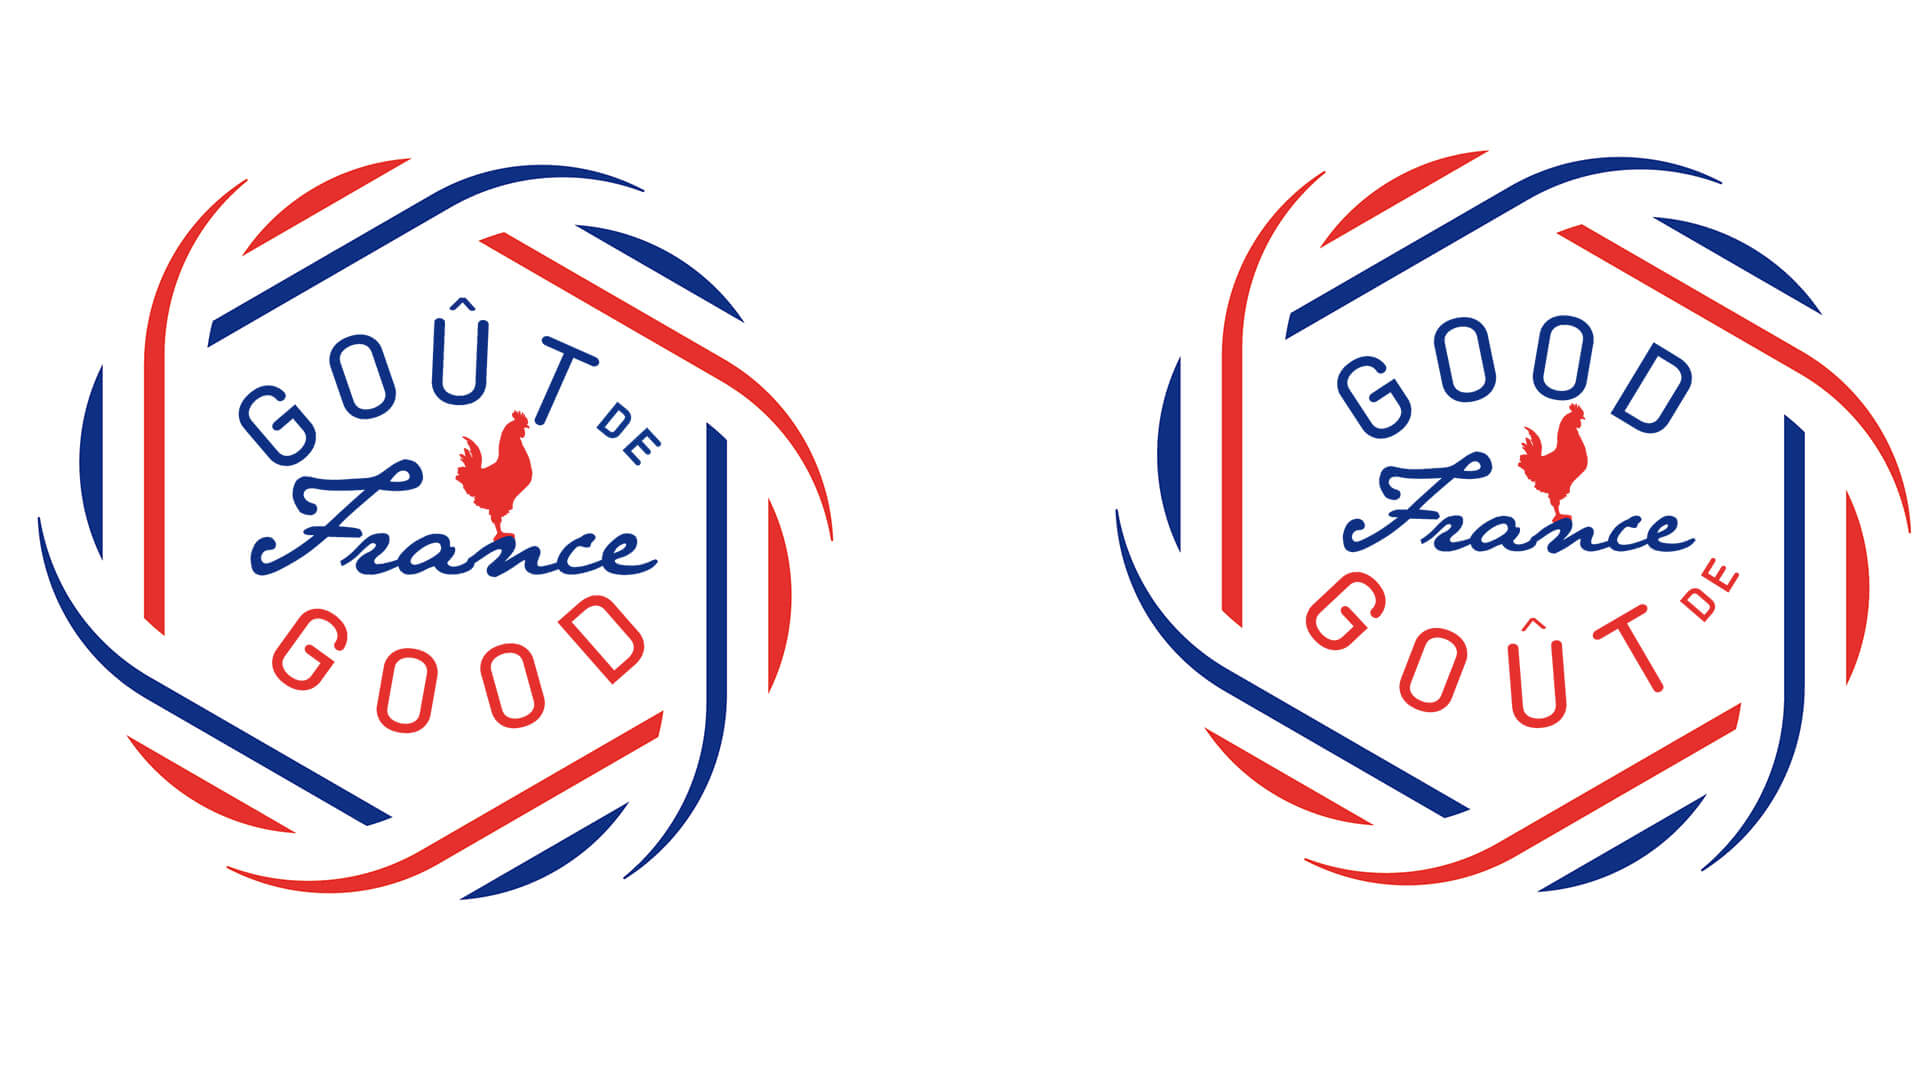 Good France 2018 - A Celebration of French Gastronomy